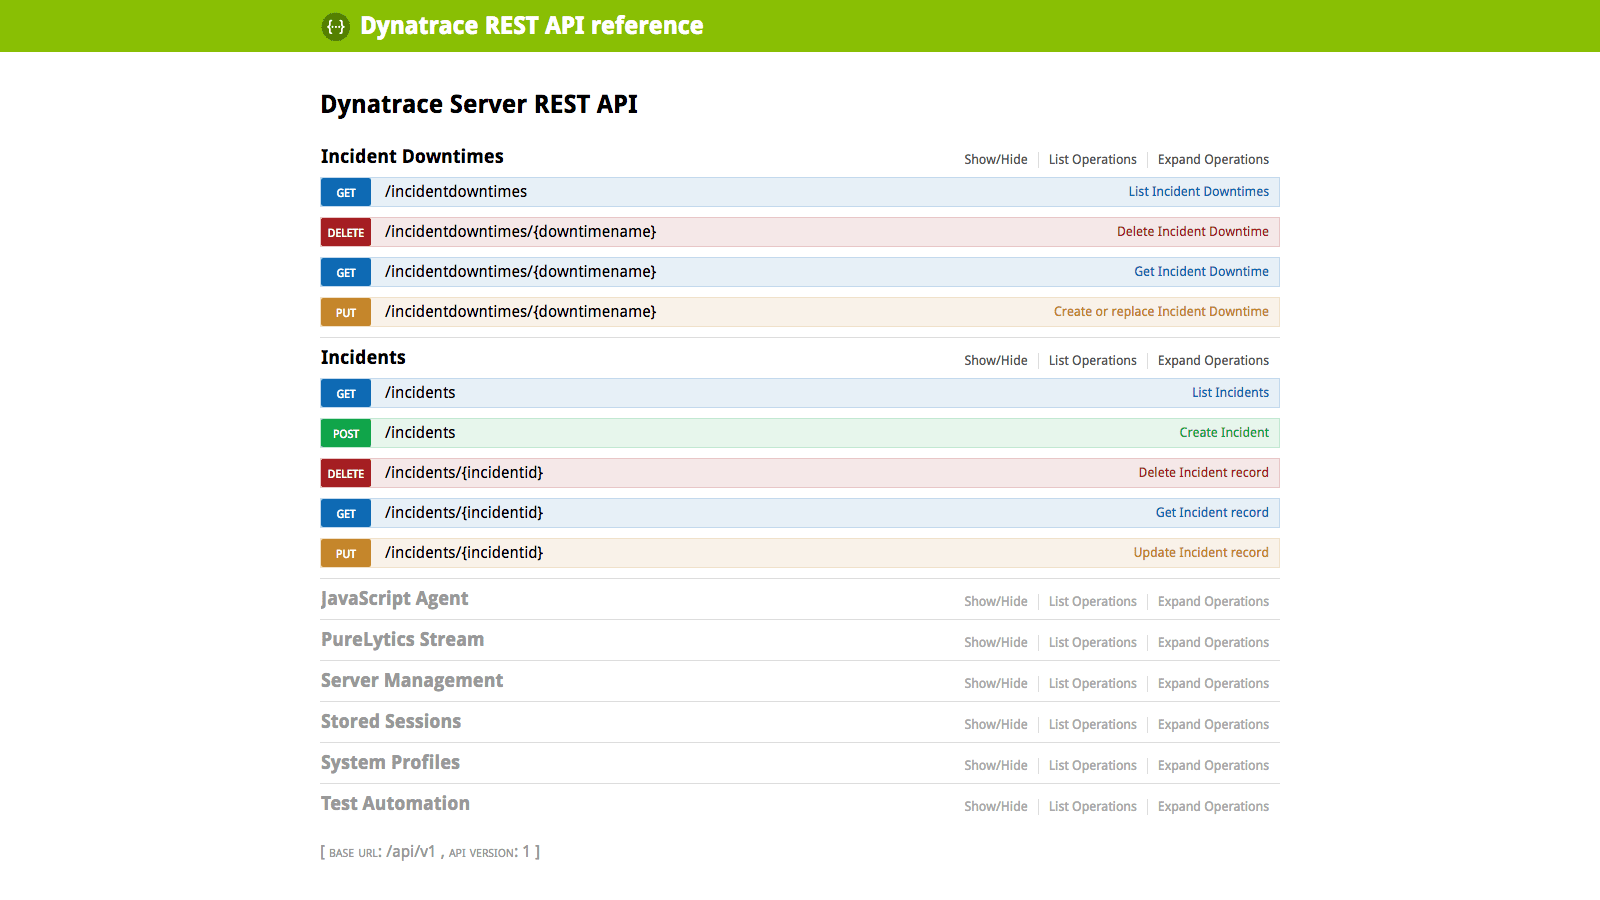 Fully automate Dynatrace via our REST APIs.